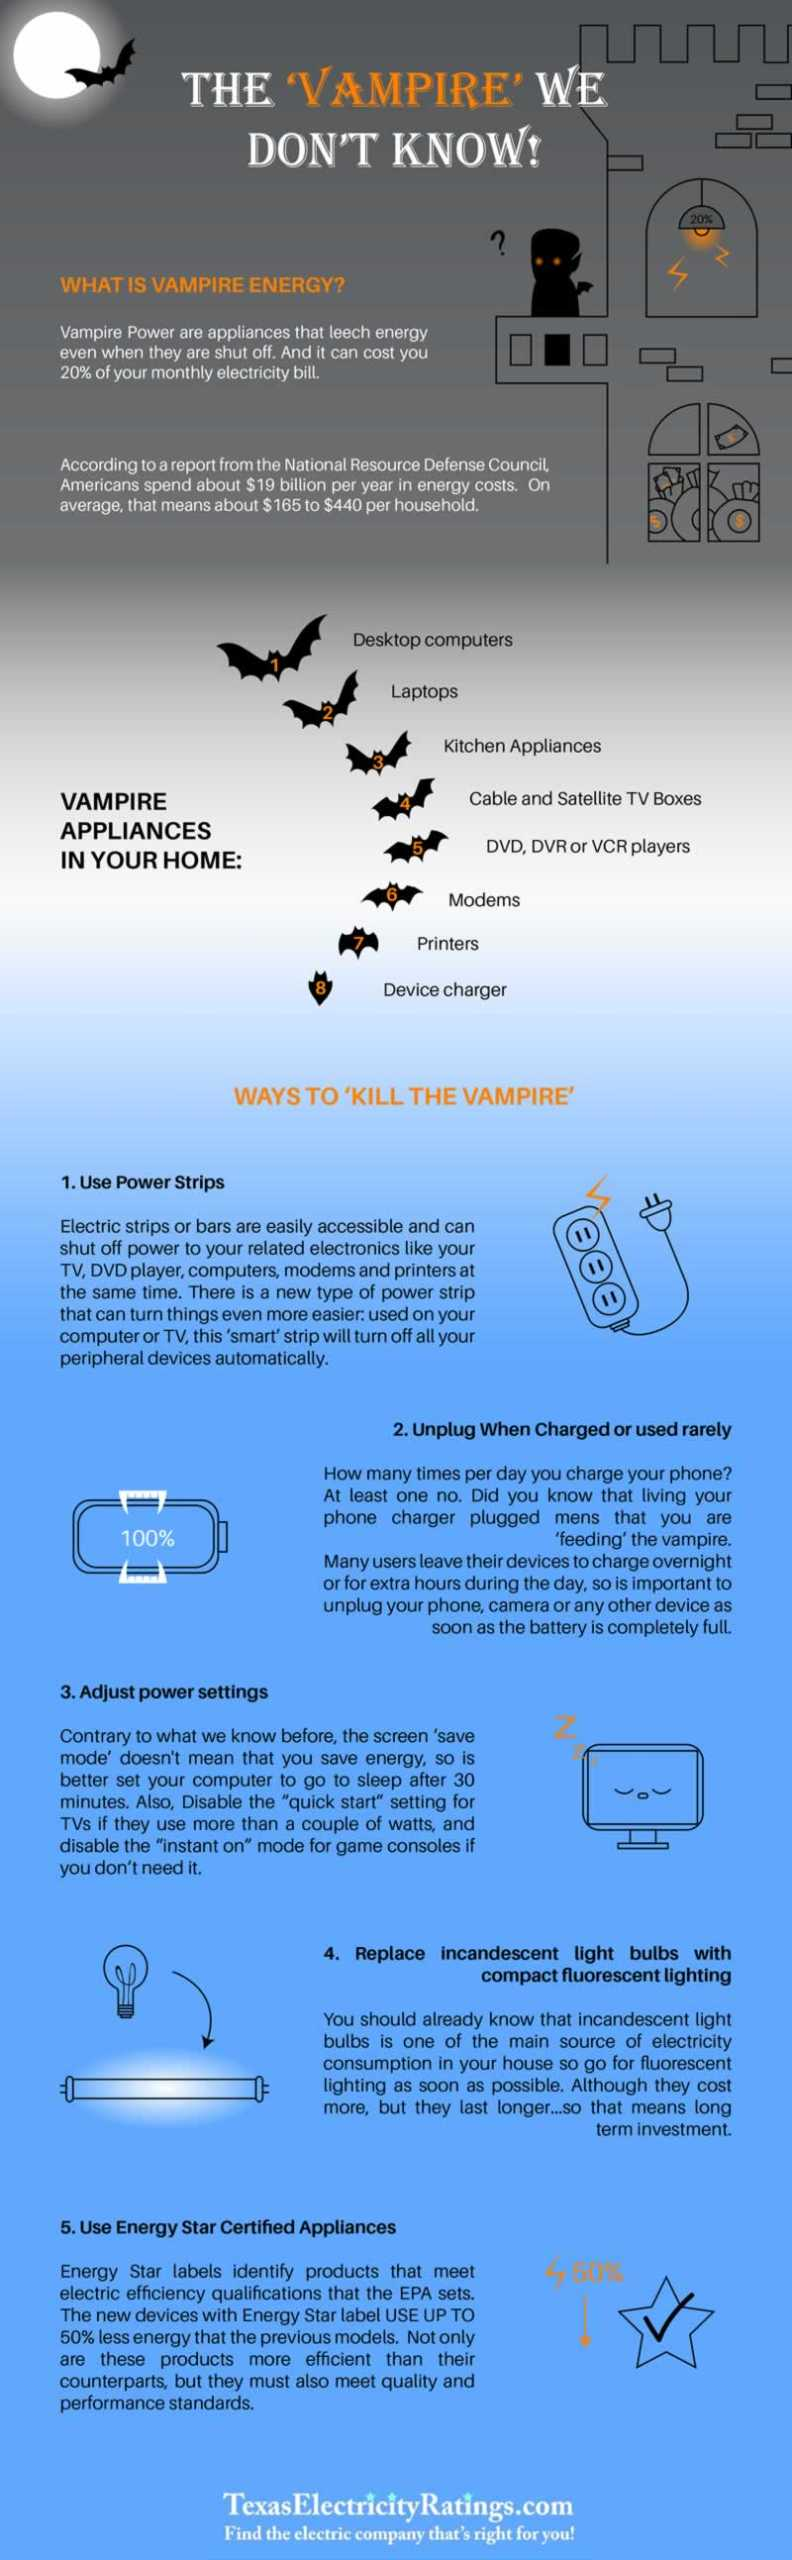 How much energy do you save by unplugging - infographic